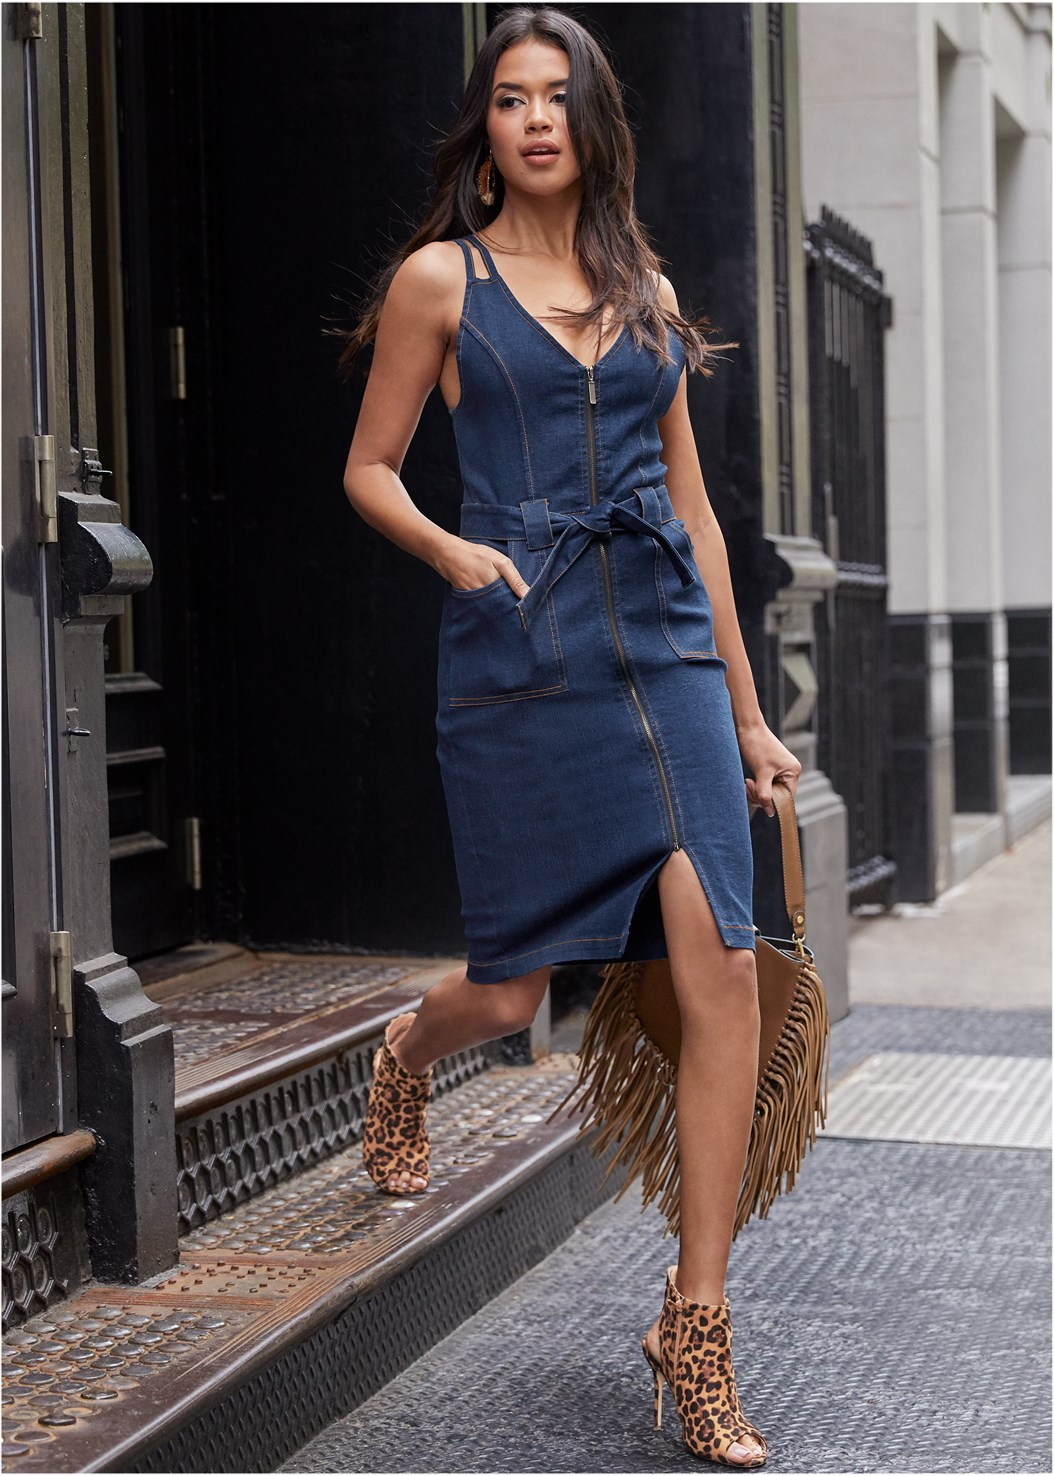 Denim Dress With Zipper,Cupid U Plunge Bra,Peep Toe Print Heels,Fringe Handbag,Mixed Earring Set